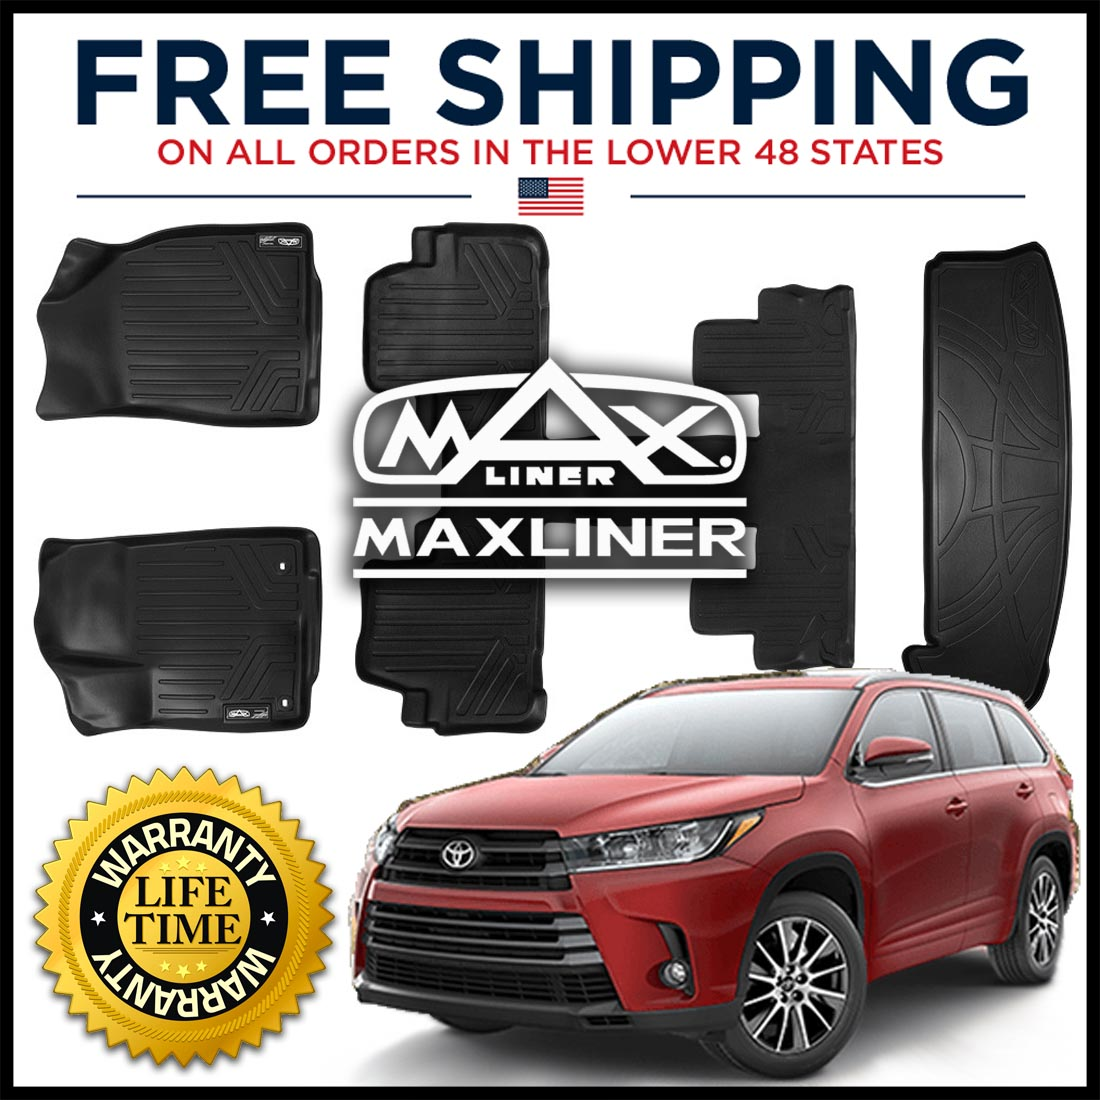 Maxliner USA A0152//B0201 No Hybrid Models SMARTLINER Floor Mats 3 Row Liner Set Black for 2014-2018 Toyota Highlander with 2nd Row Bucket Seats